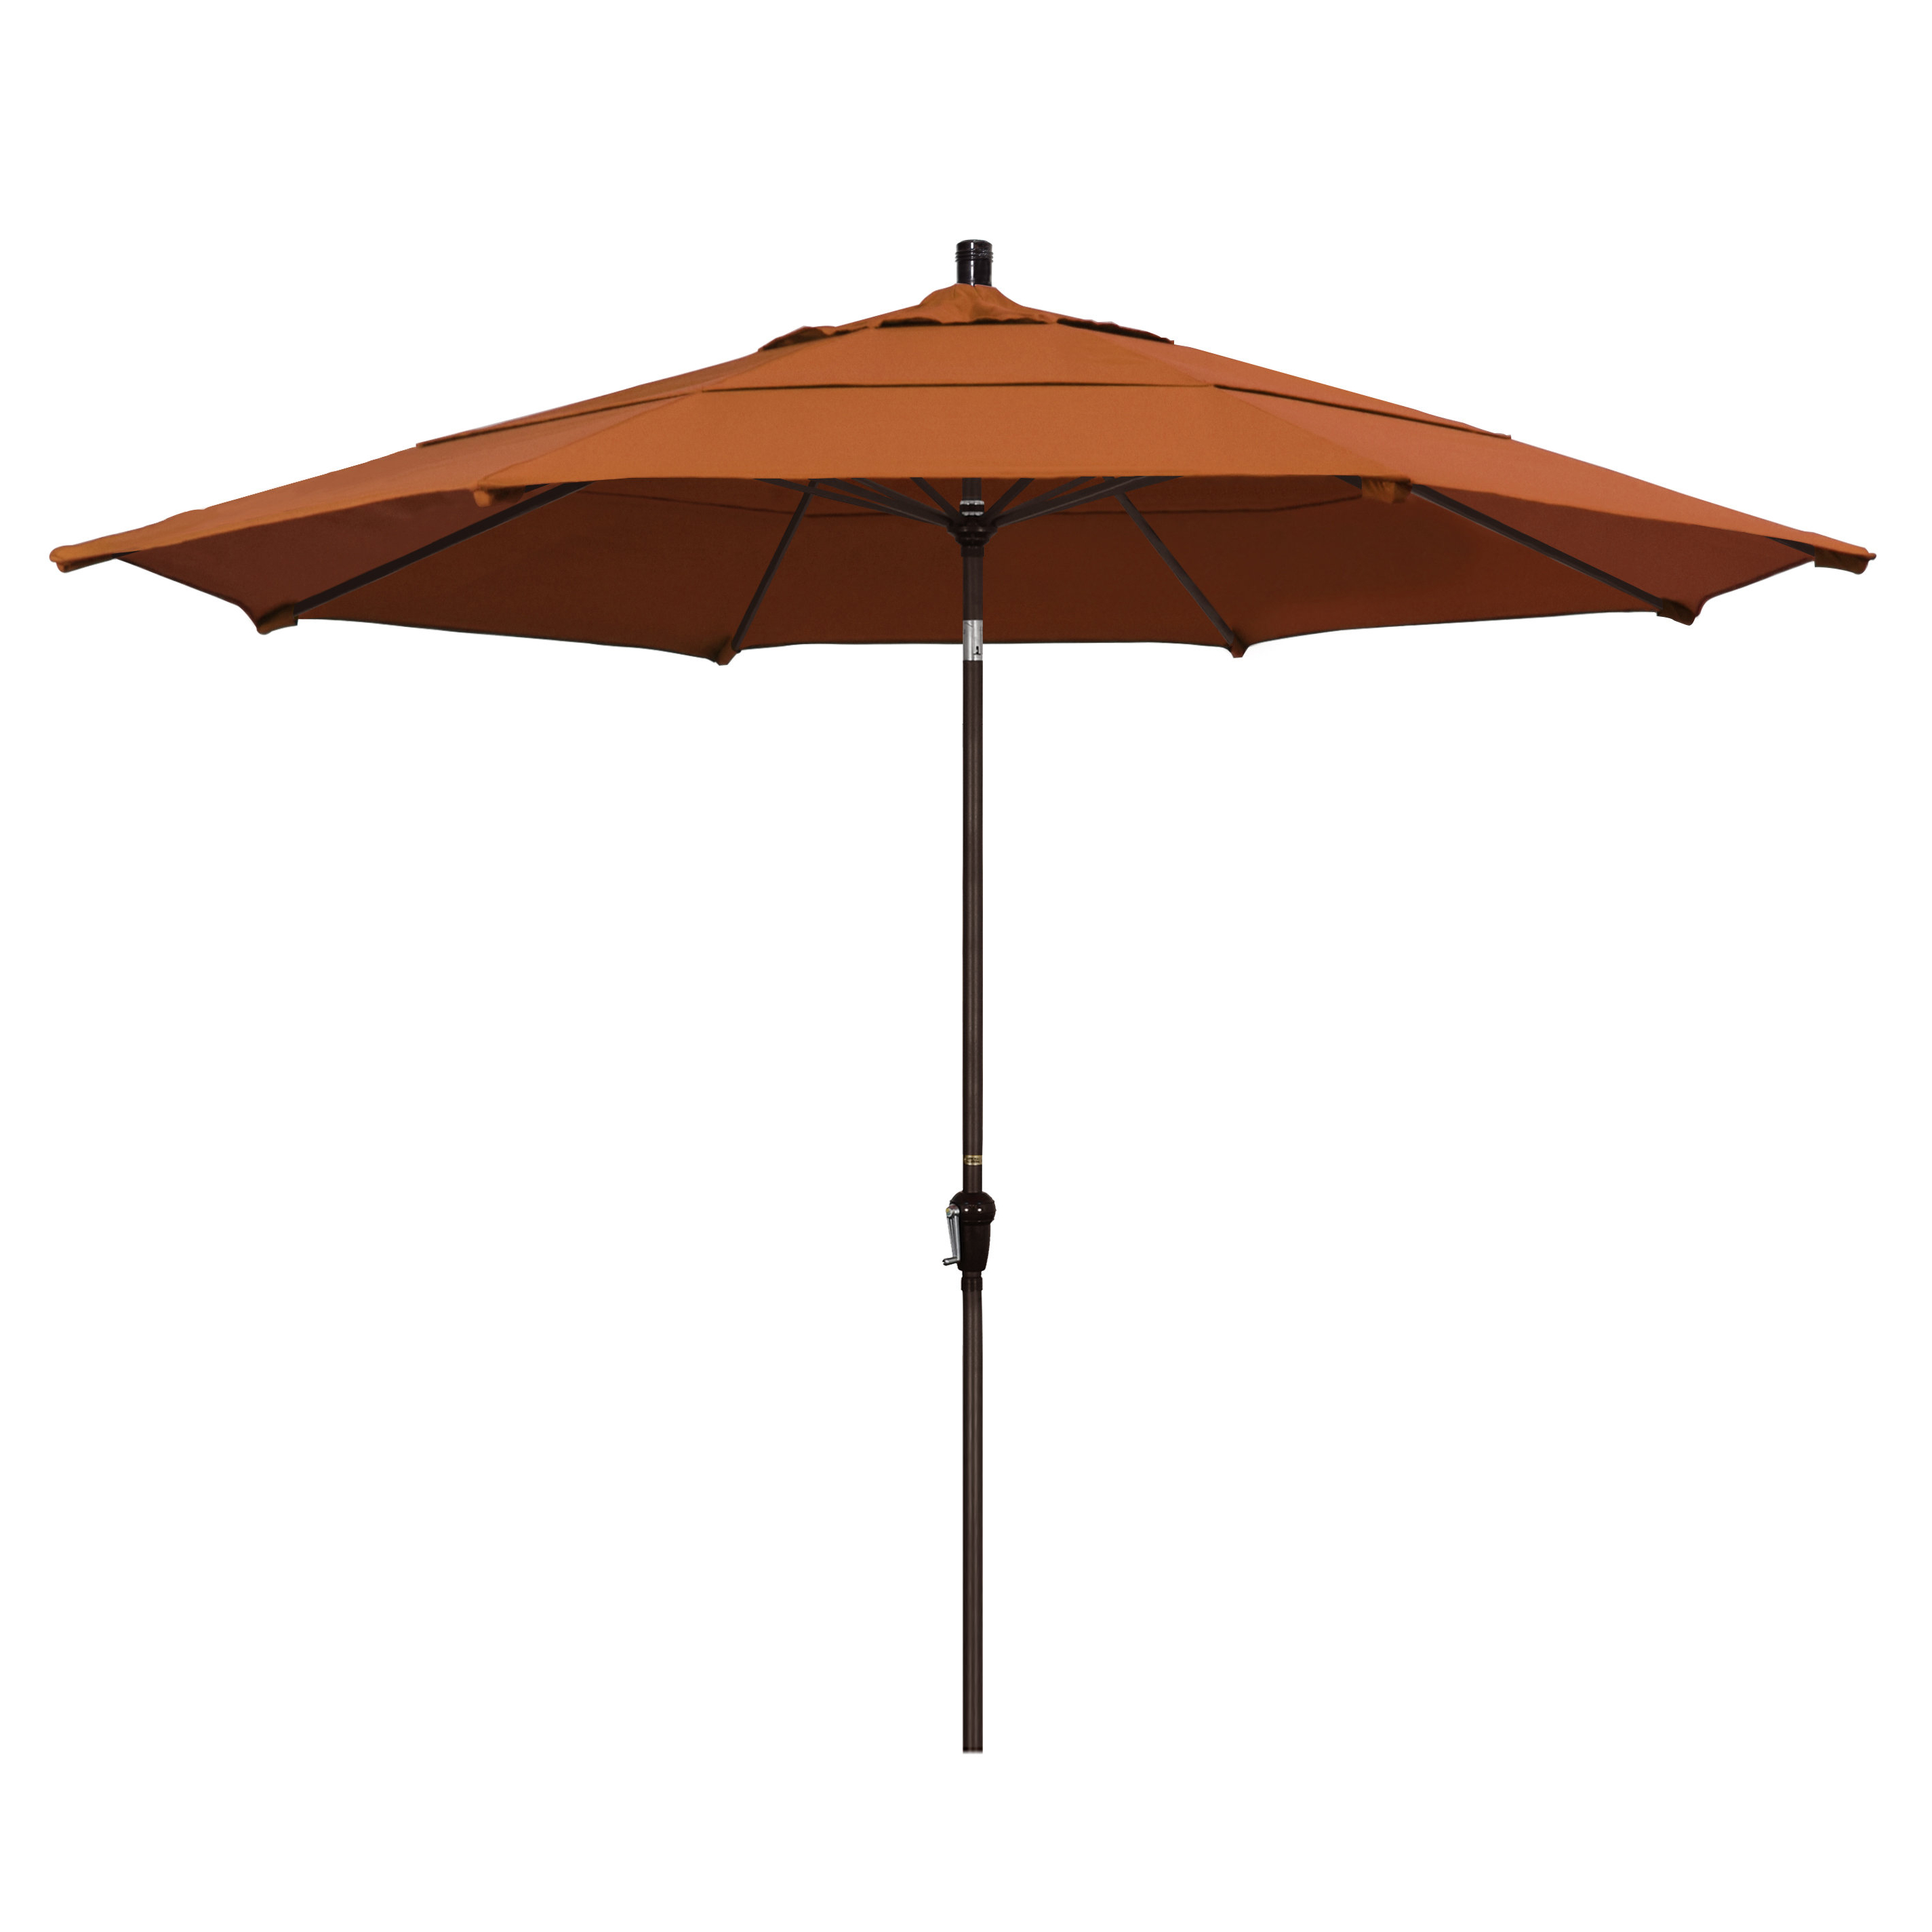 Most Up To Date Mullaney Market Sunbrella Umbrellas Pertaining To Mullaney 11' Market Sunbrella Umbrella (View 5 of 20)